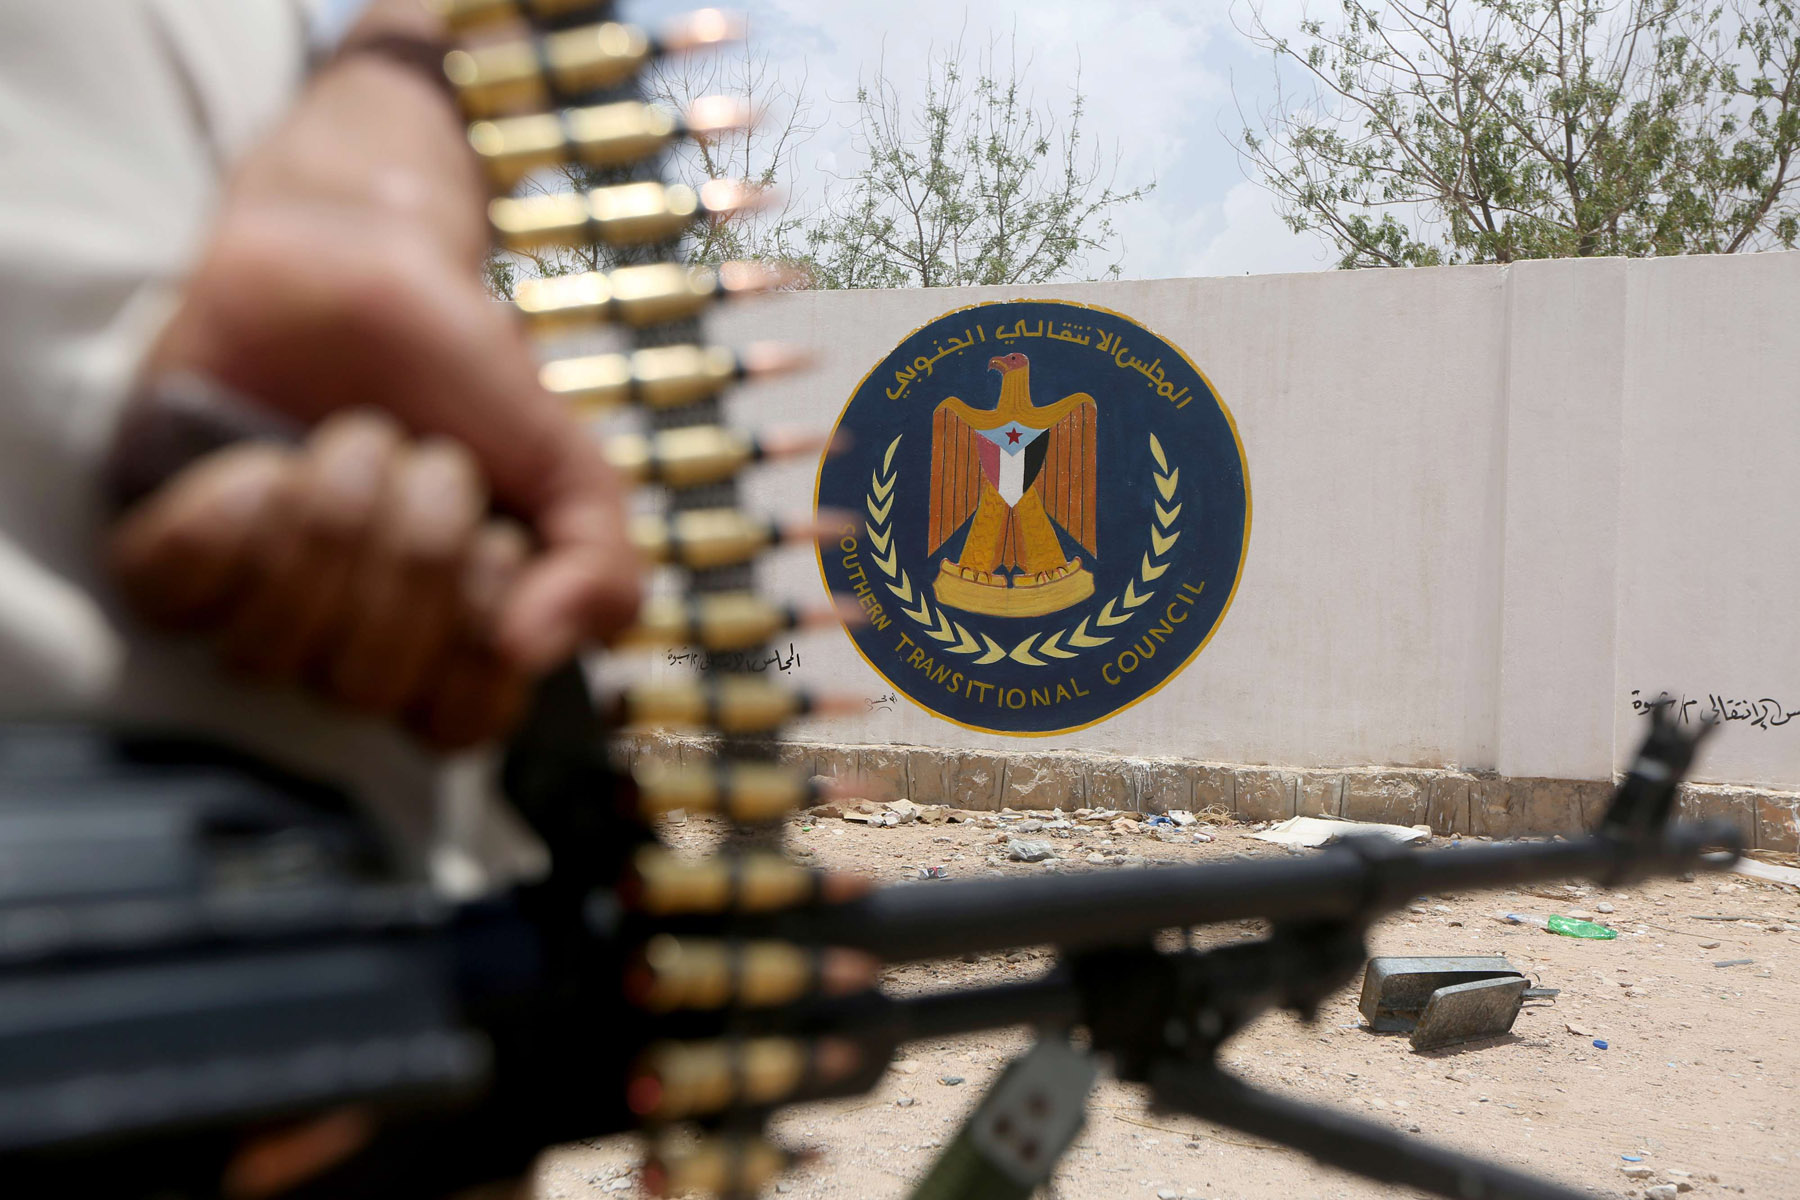 A Yemeni government soldier holds a weapon as he stands by an emblem of the Southern Transitional Council at the council's headquarters in Ataq, last August. (Reuters)